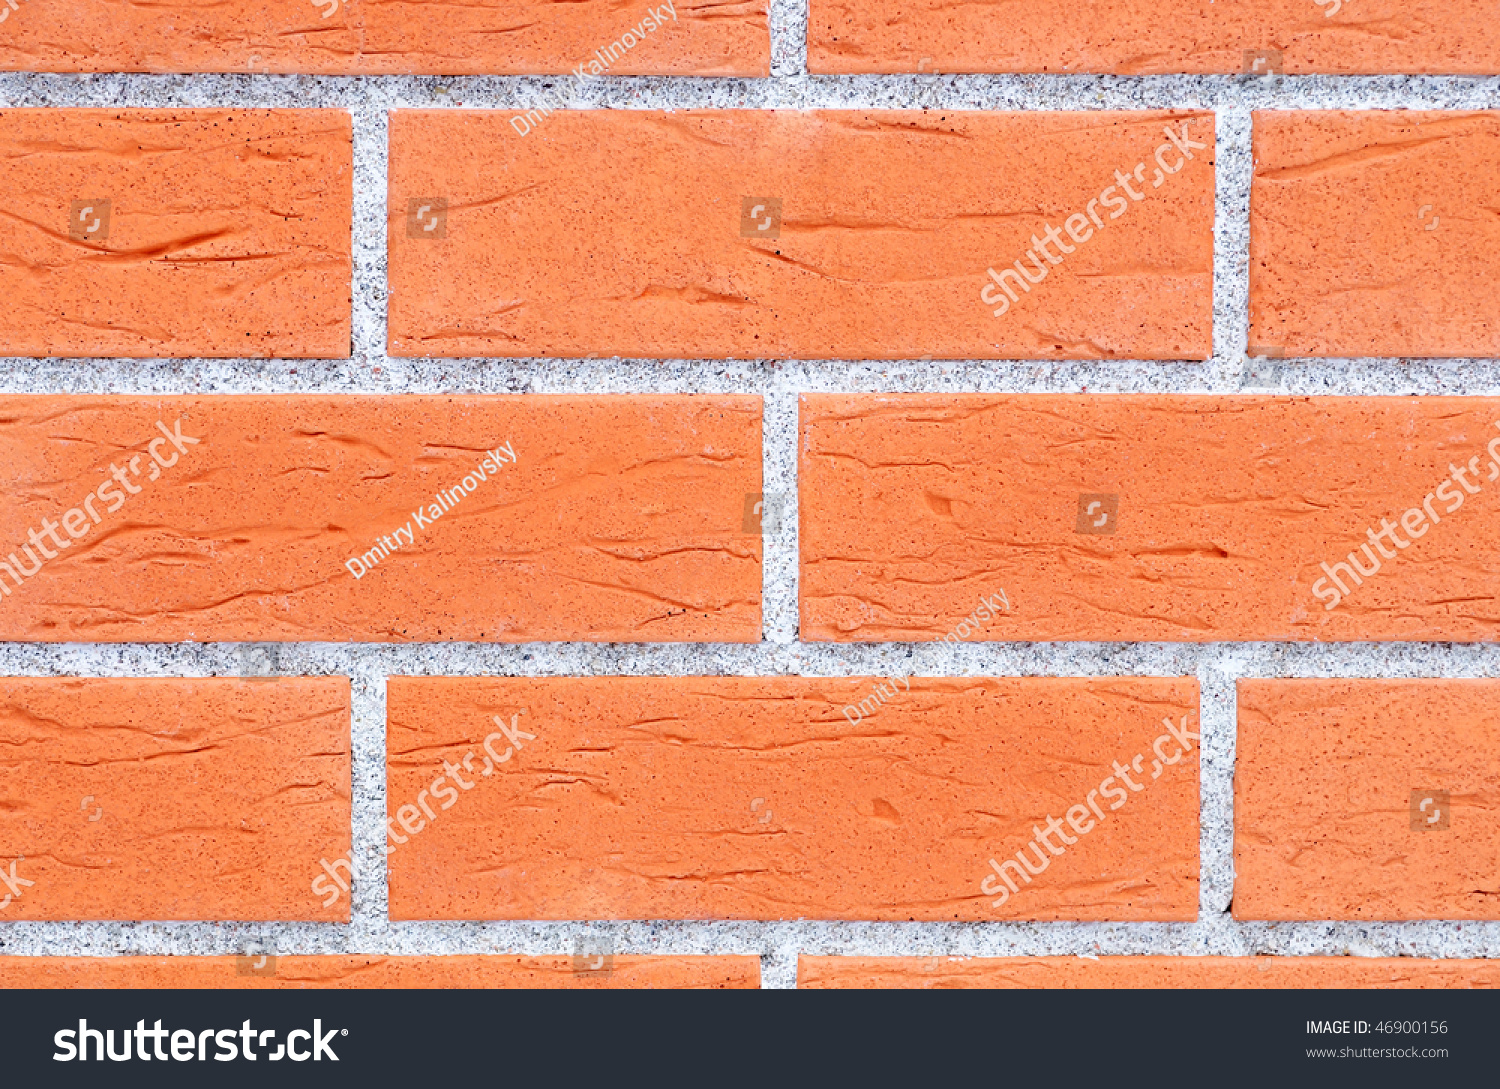 Brick stone exterior and interior decoration building material for wall  finishingBrick Stone Exterior Interior Decoration Building Stock Photo  . Exterior Wall Finishing Materials. Home Design Ideas